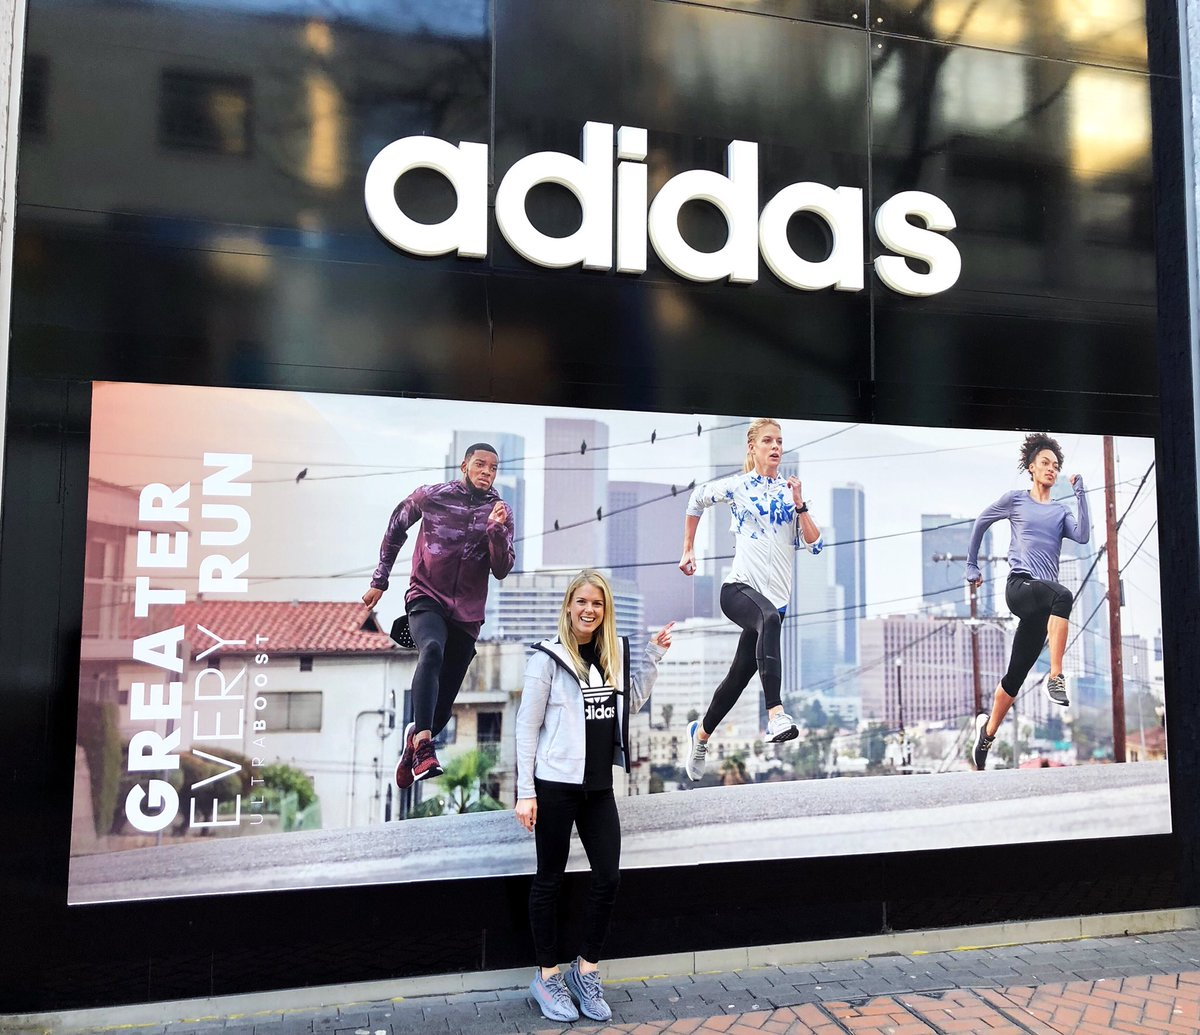 my nearest adidas